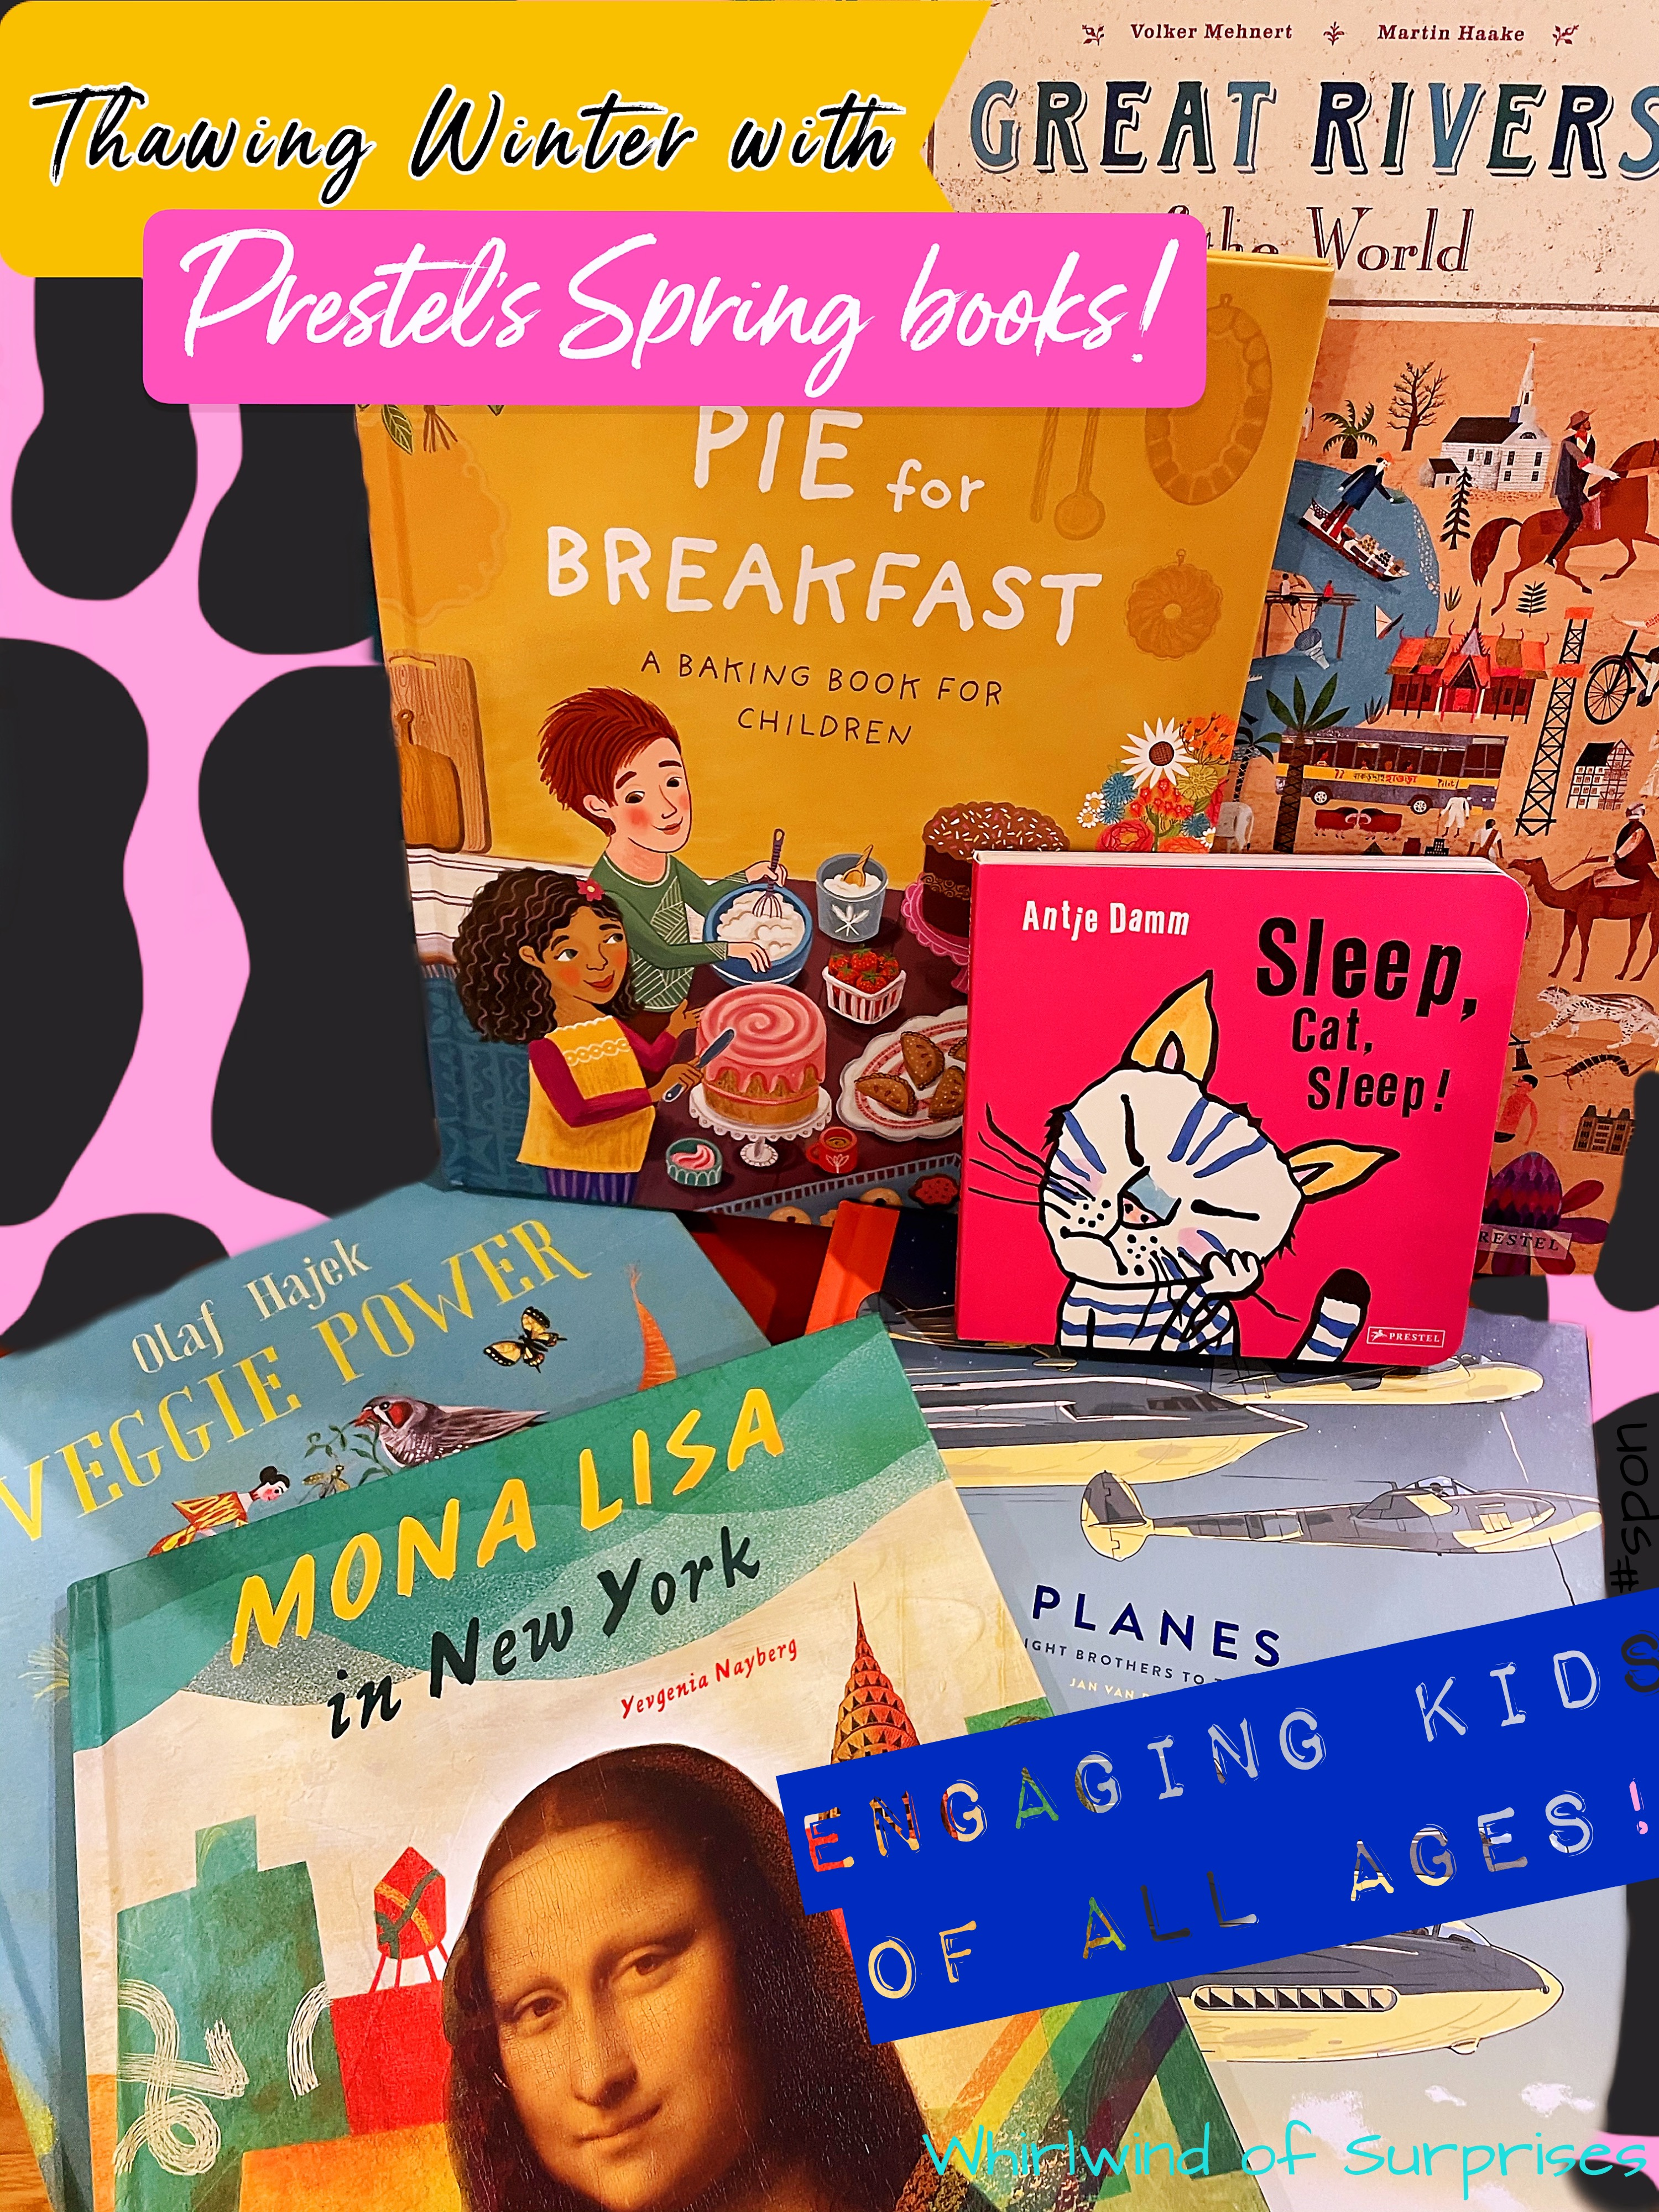 Spring books to help thaw winter and fun reading with the kids.